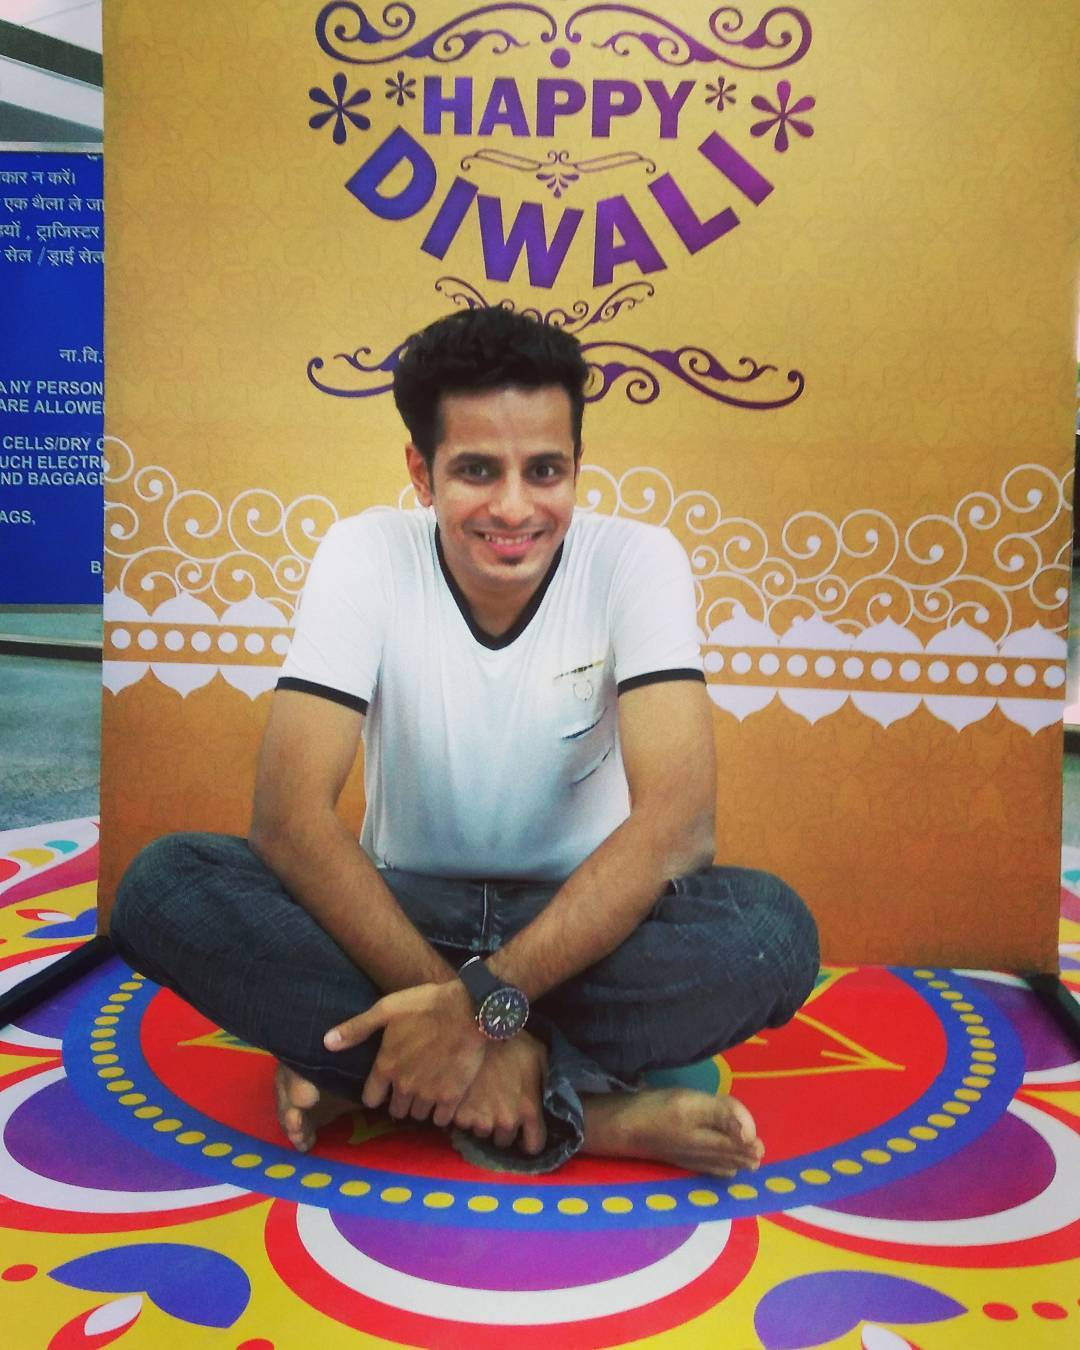 Wishing you all Love, Light & Laughter! Happy Diwali 🎆, Happy Halloween 🎃 & Happy New Year 🎉, ya'll!  #diwali #festival #gujarat #india #mumbai #ahmedabad #rangoli #newyear #gujarati #halloween #celebrate #excited #awesome #festivaloflights #life #happy #actorslife #desi #comiclife #art #artist #fun #culture #indian #gujju #2016 #colour #design #travel #usf